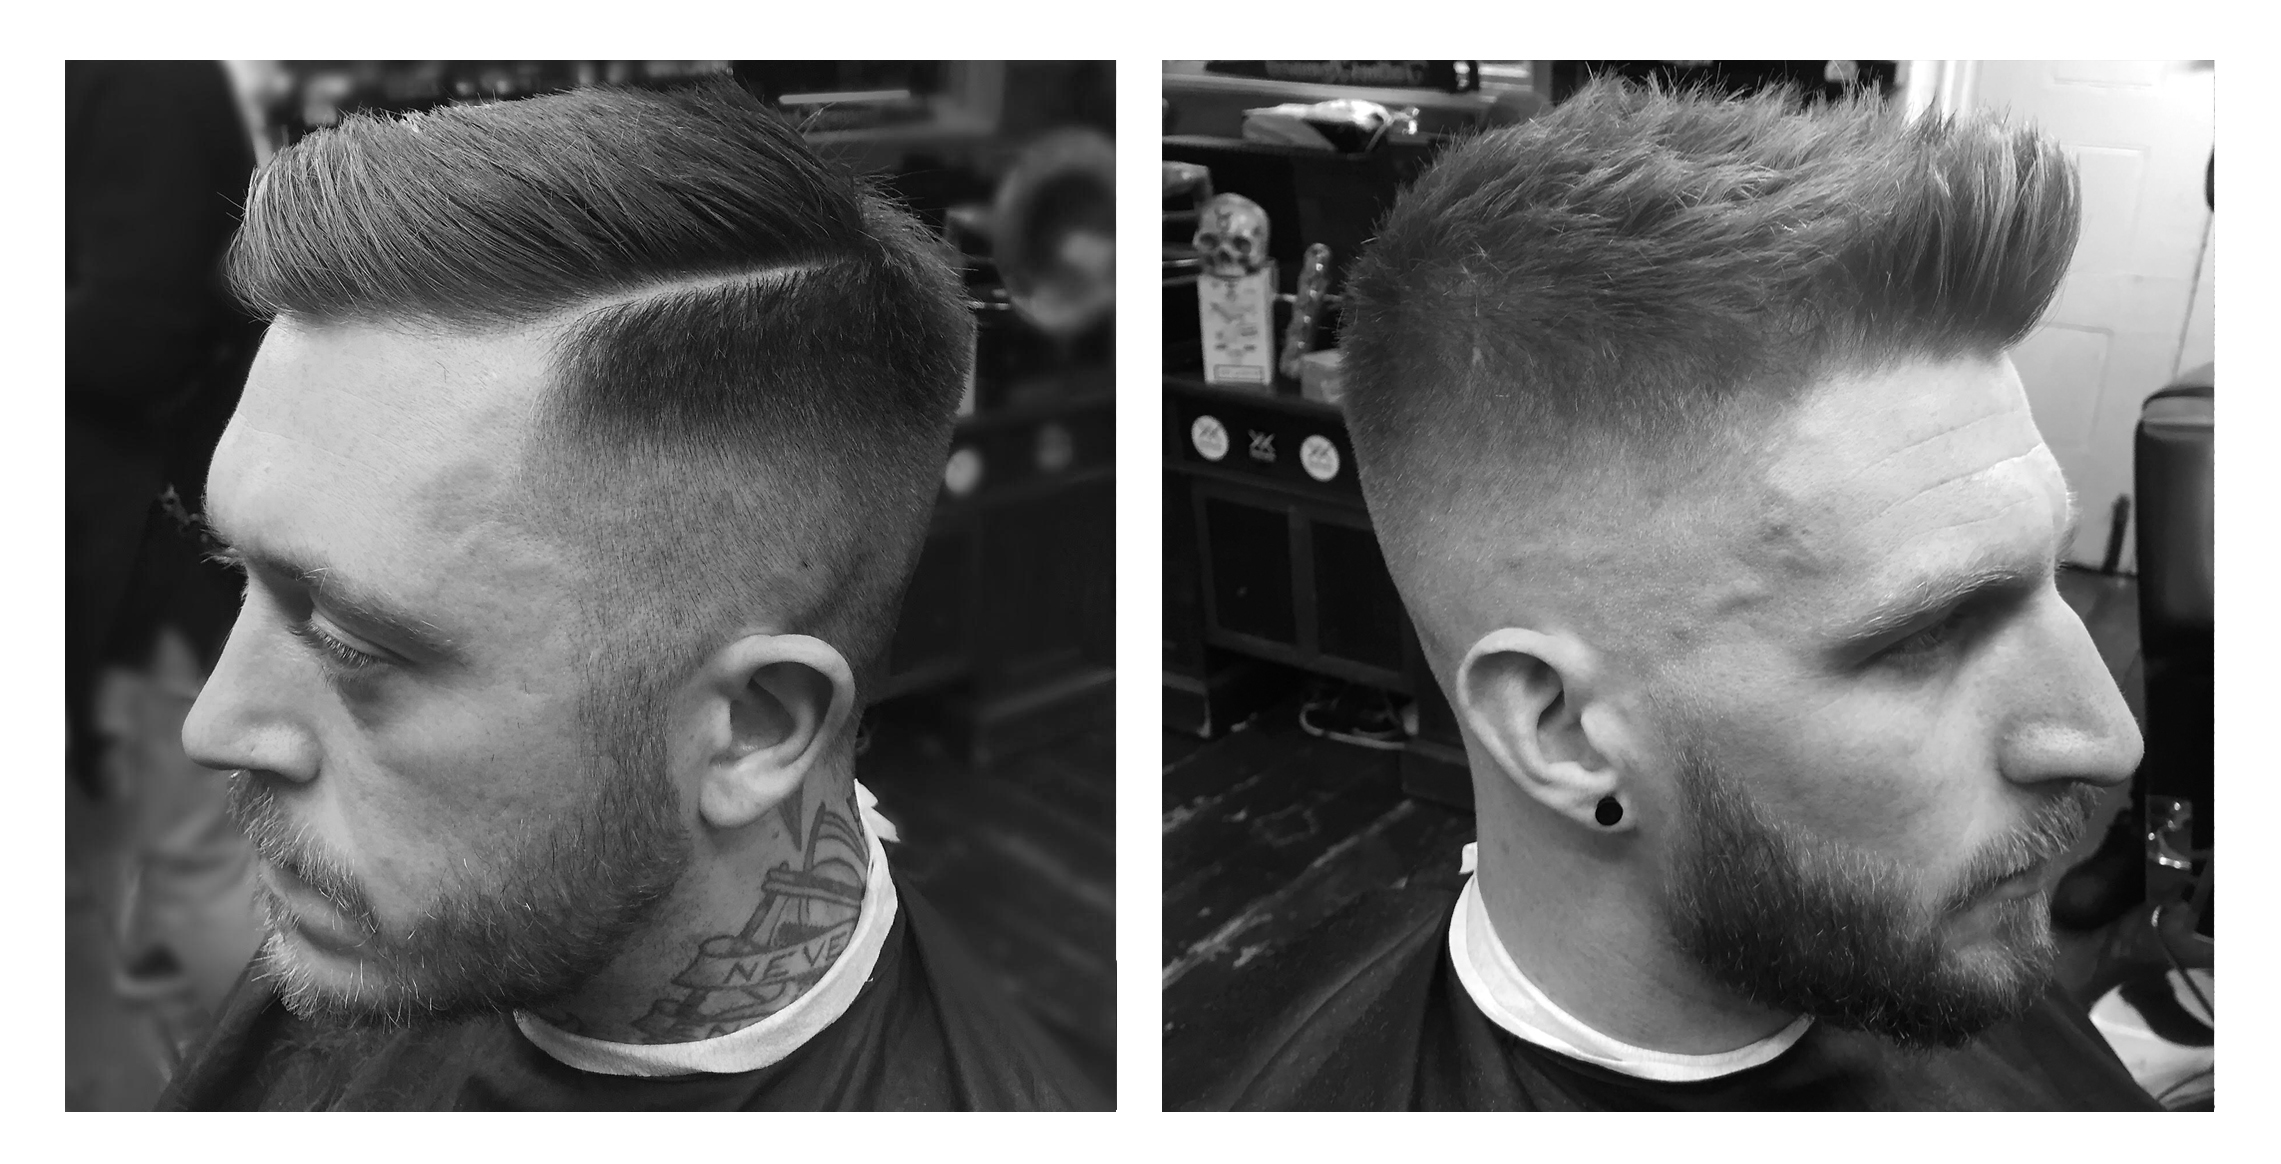 3.  Quite a heavy 1 fade, keeping it square with the head.. Hard part to keep it looking sharp.Point cut on top and styled with more of a matte finish product to keep a bit of texture.      4.Medium skin fade with a nice simple point cut on top with small quiff.. Styled w/ a matte product again to keep texture.